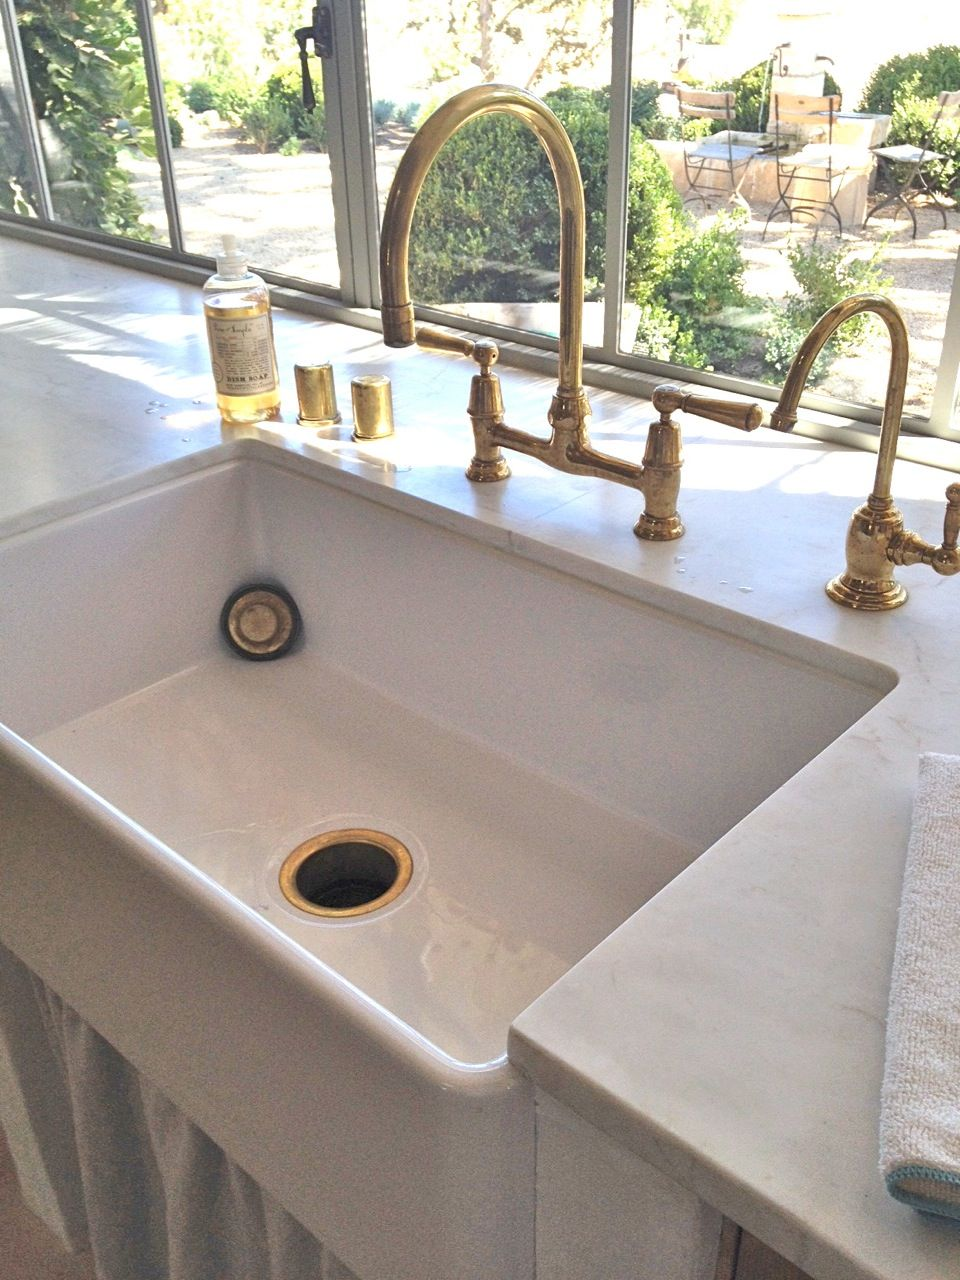 Shaw Farmhouse Sink Reviews Slim Lined Farmhouse Sink This One Is The 30